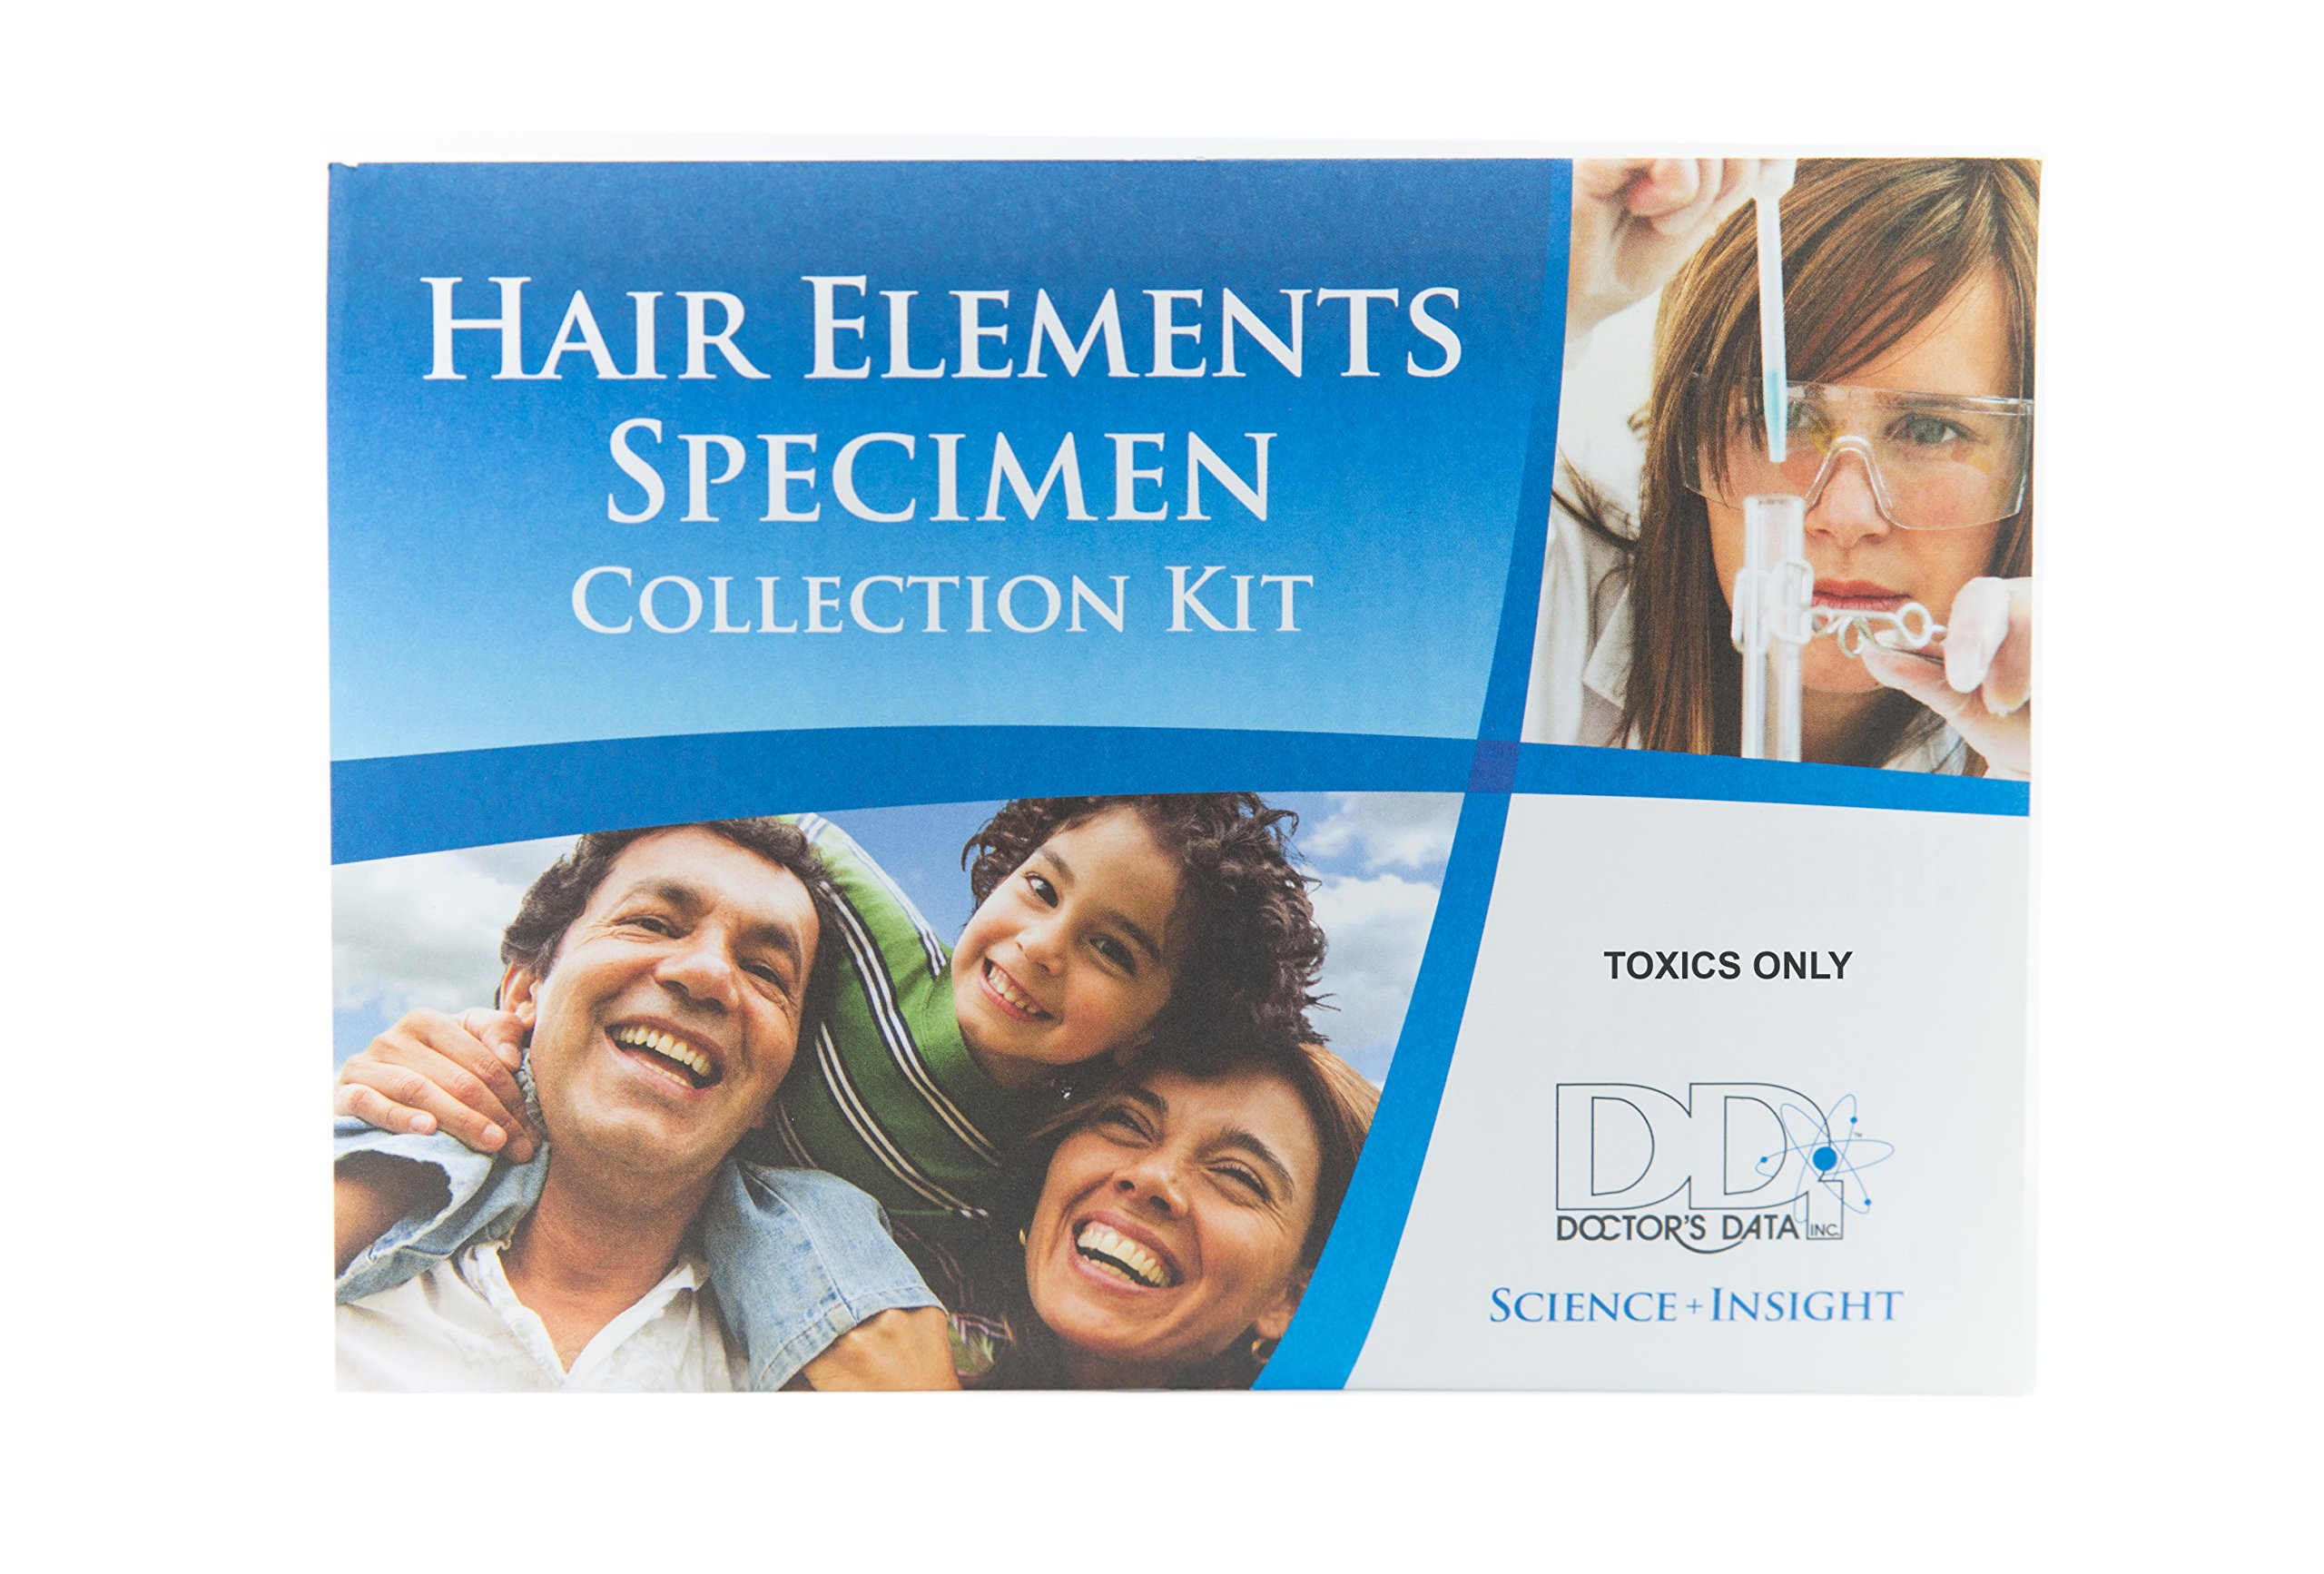 Toxic Element Exposure Home Hair Testing Kit (Test for 31 Heavy Metals, Toxins and Chemicals) - Includes Pre-Paid Sample Return Label